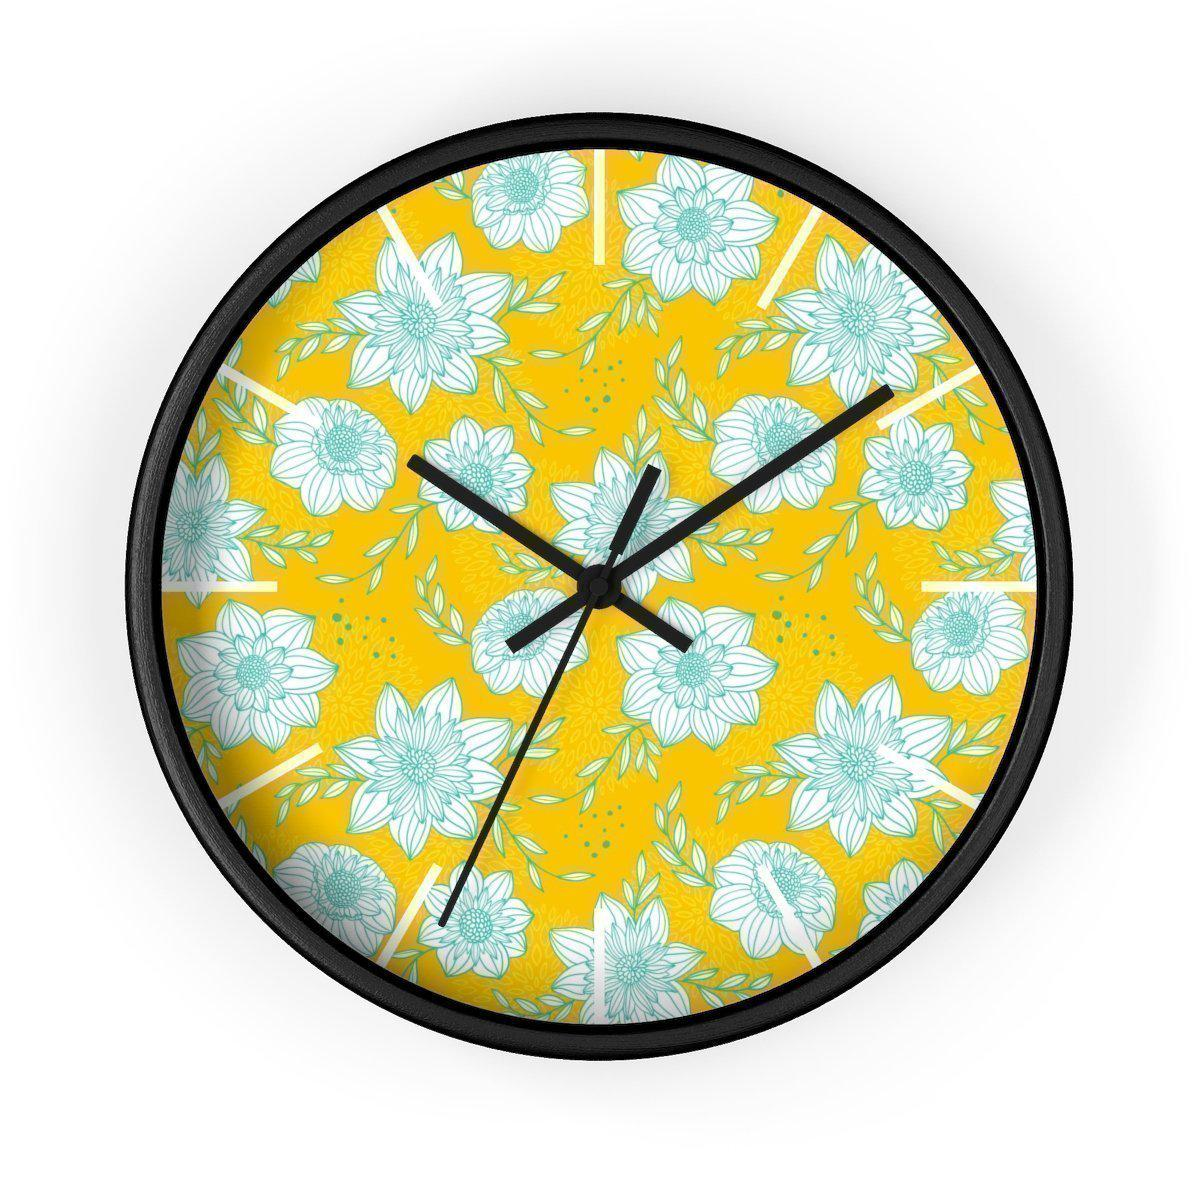 Maison d'Elite Floral Wall clock-Home Décor › Accents › Wall Decor › Clocks & Sculptures-Maison d'Elite-Très Elite